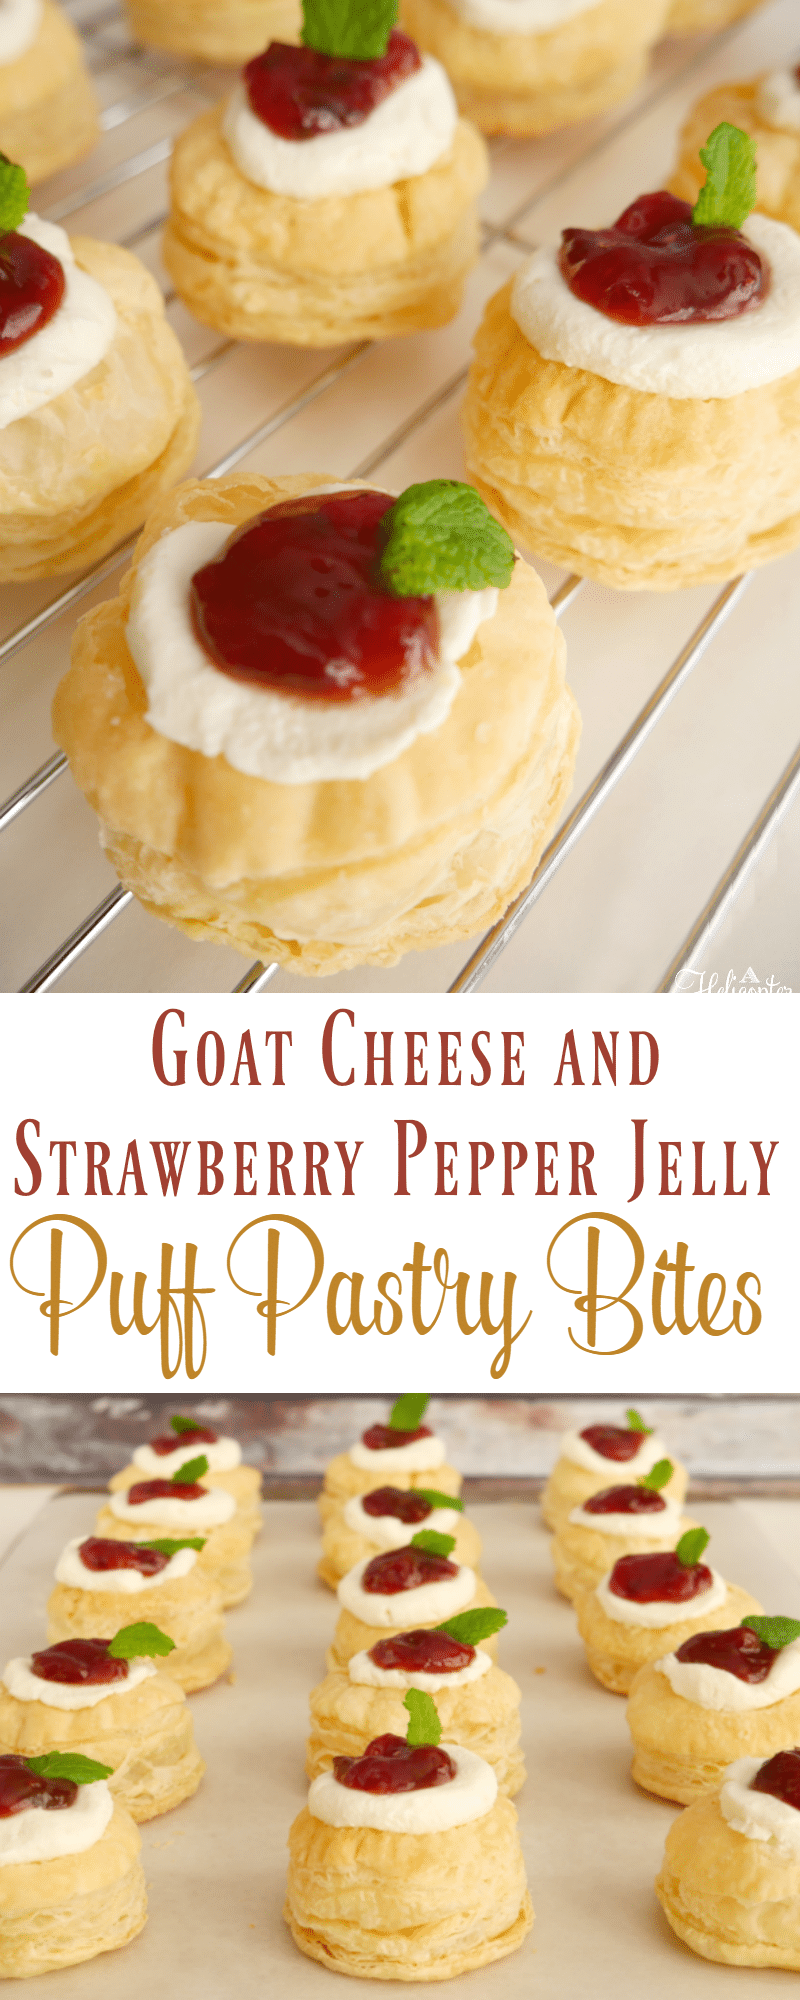 Goat Cheese and Strawberry Pepper Jelly Pastry Puff Bites